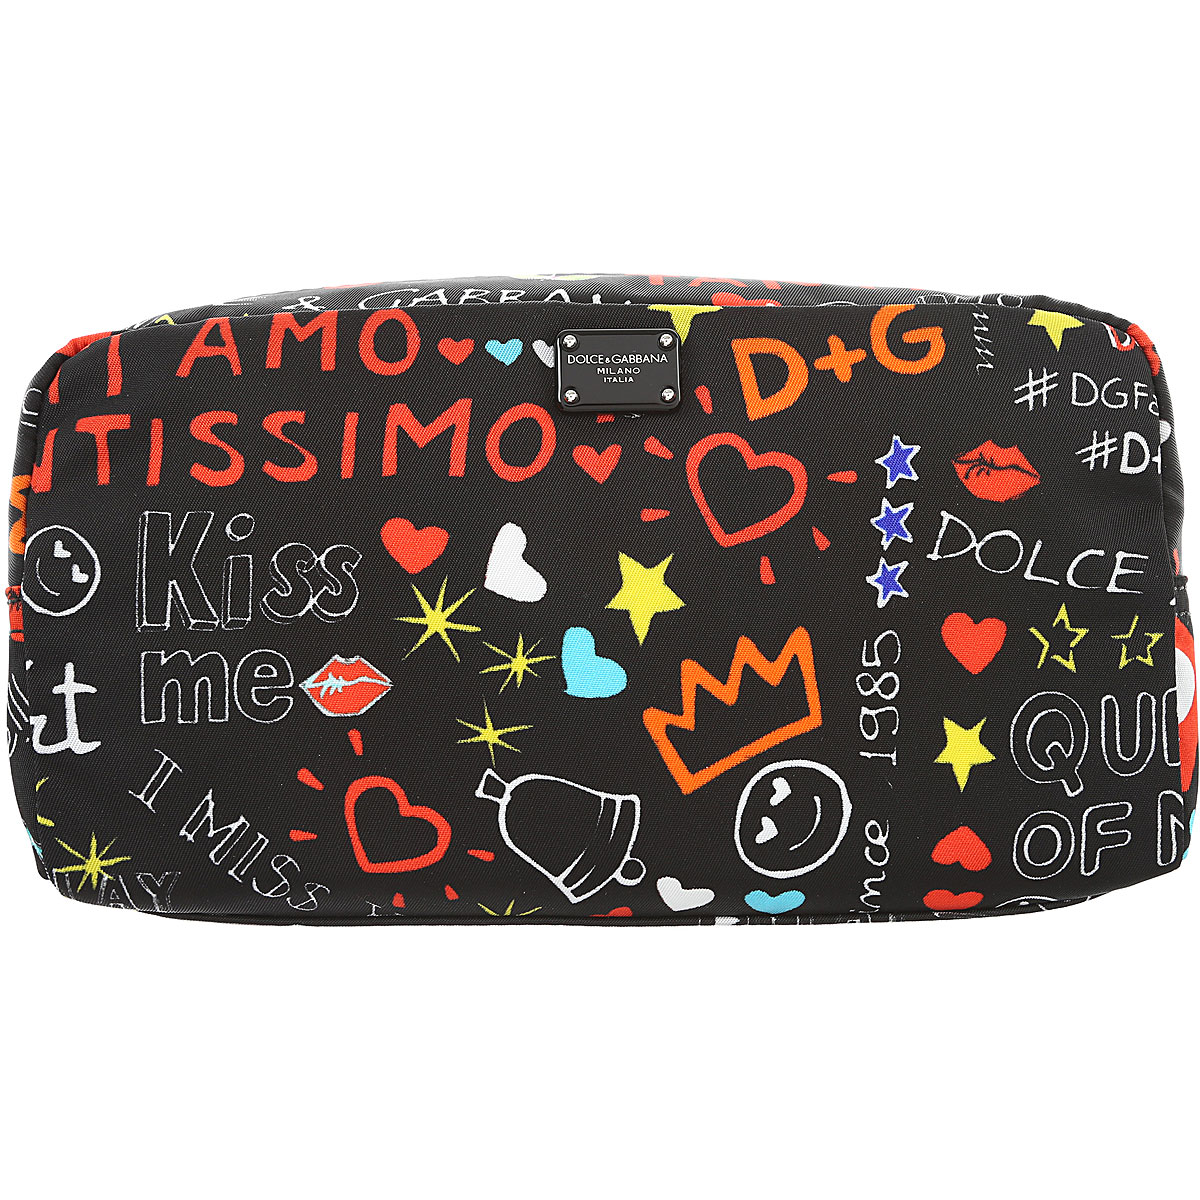 Image of Dolce & Gabbana Makeup Bag Cosmetic Case for Women, Black, Nylon, 2017